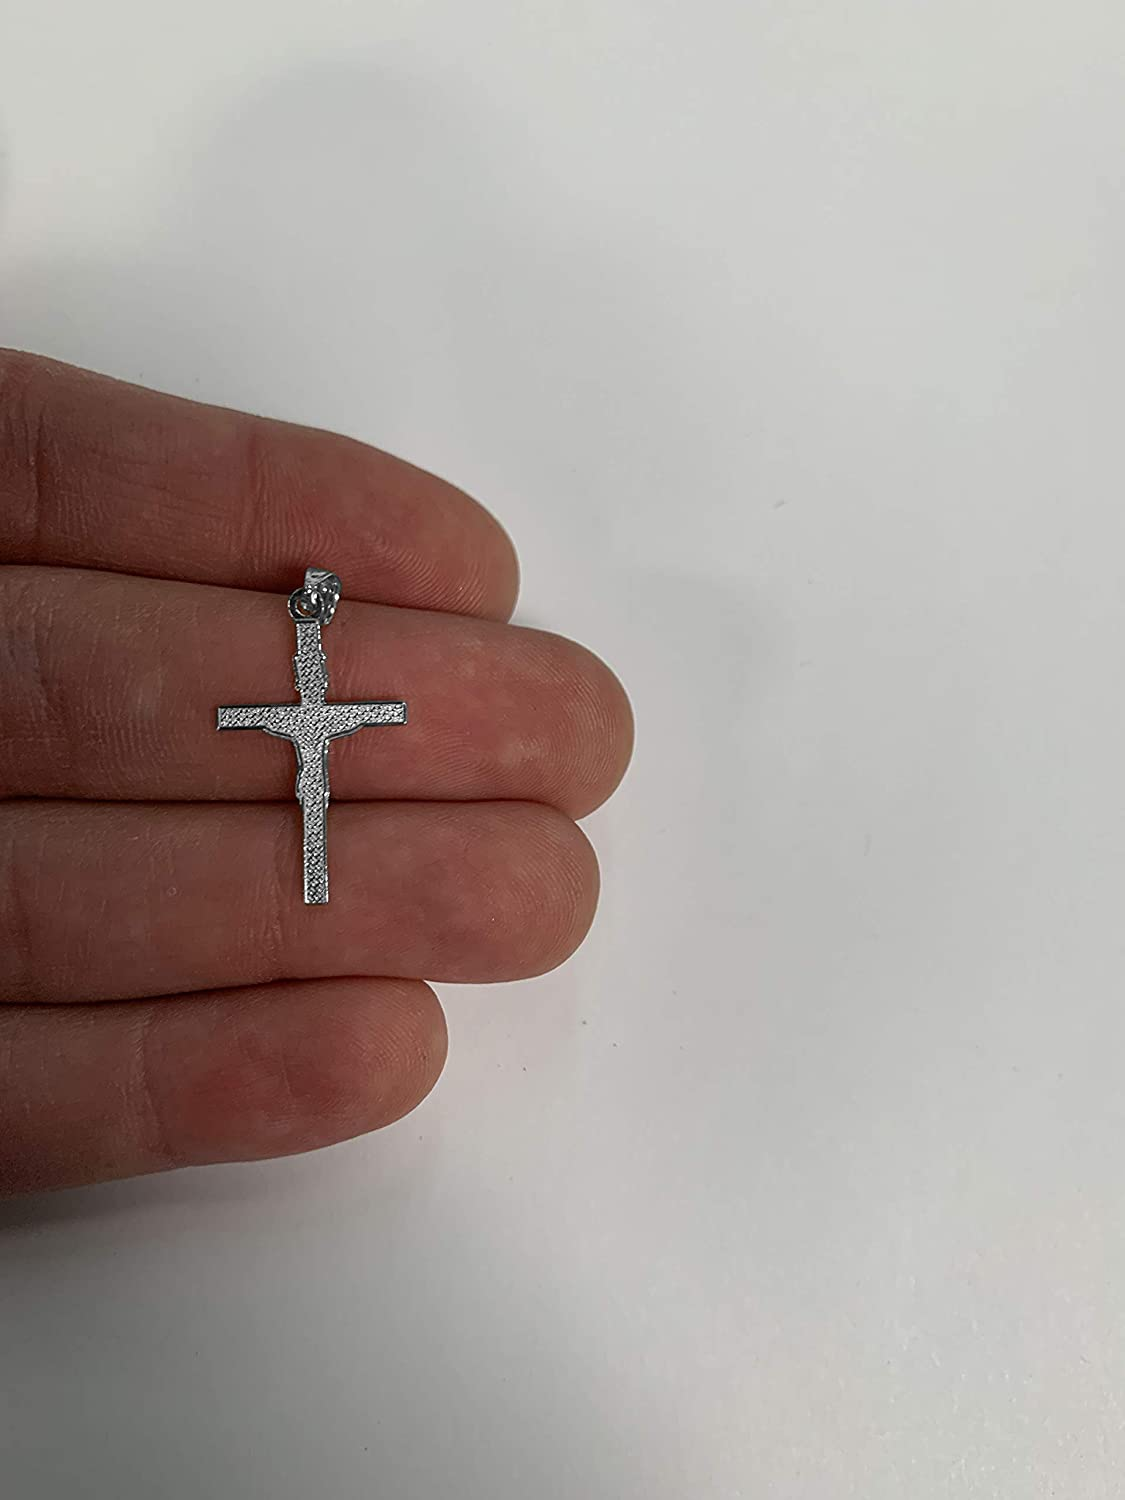 Classic Religious Jesus Piece Jewelry Gifts for Holy Occasions or Everyday Wear 925 Sterling Silver INRI Cross Pendant